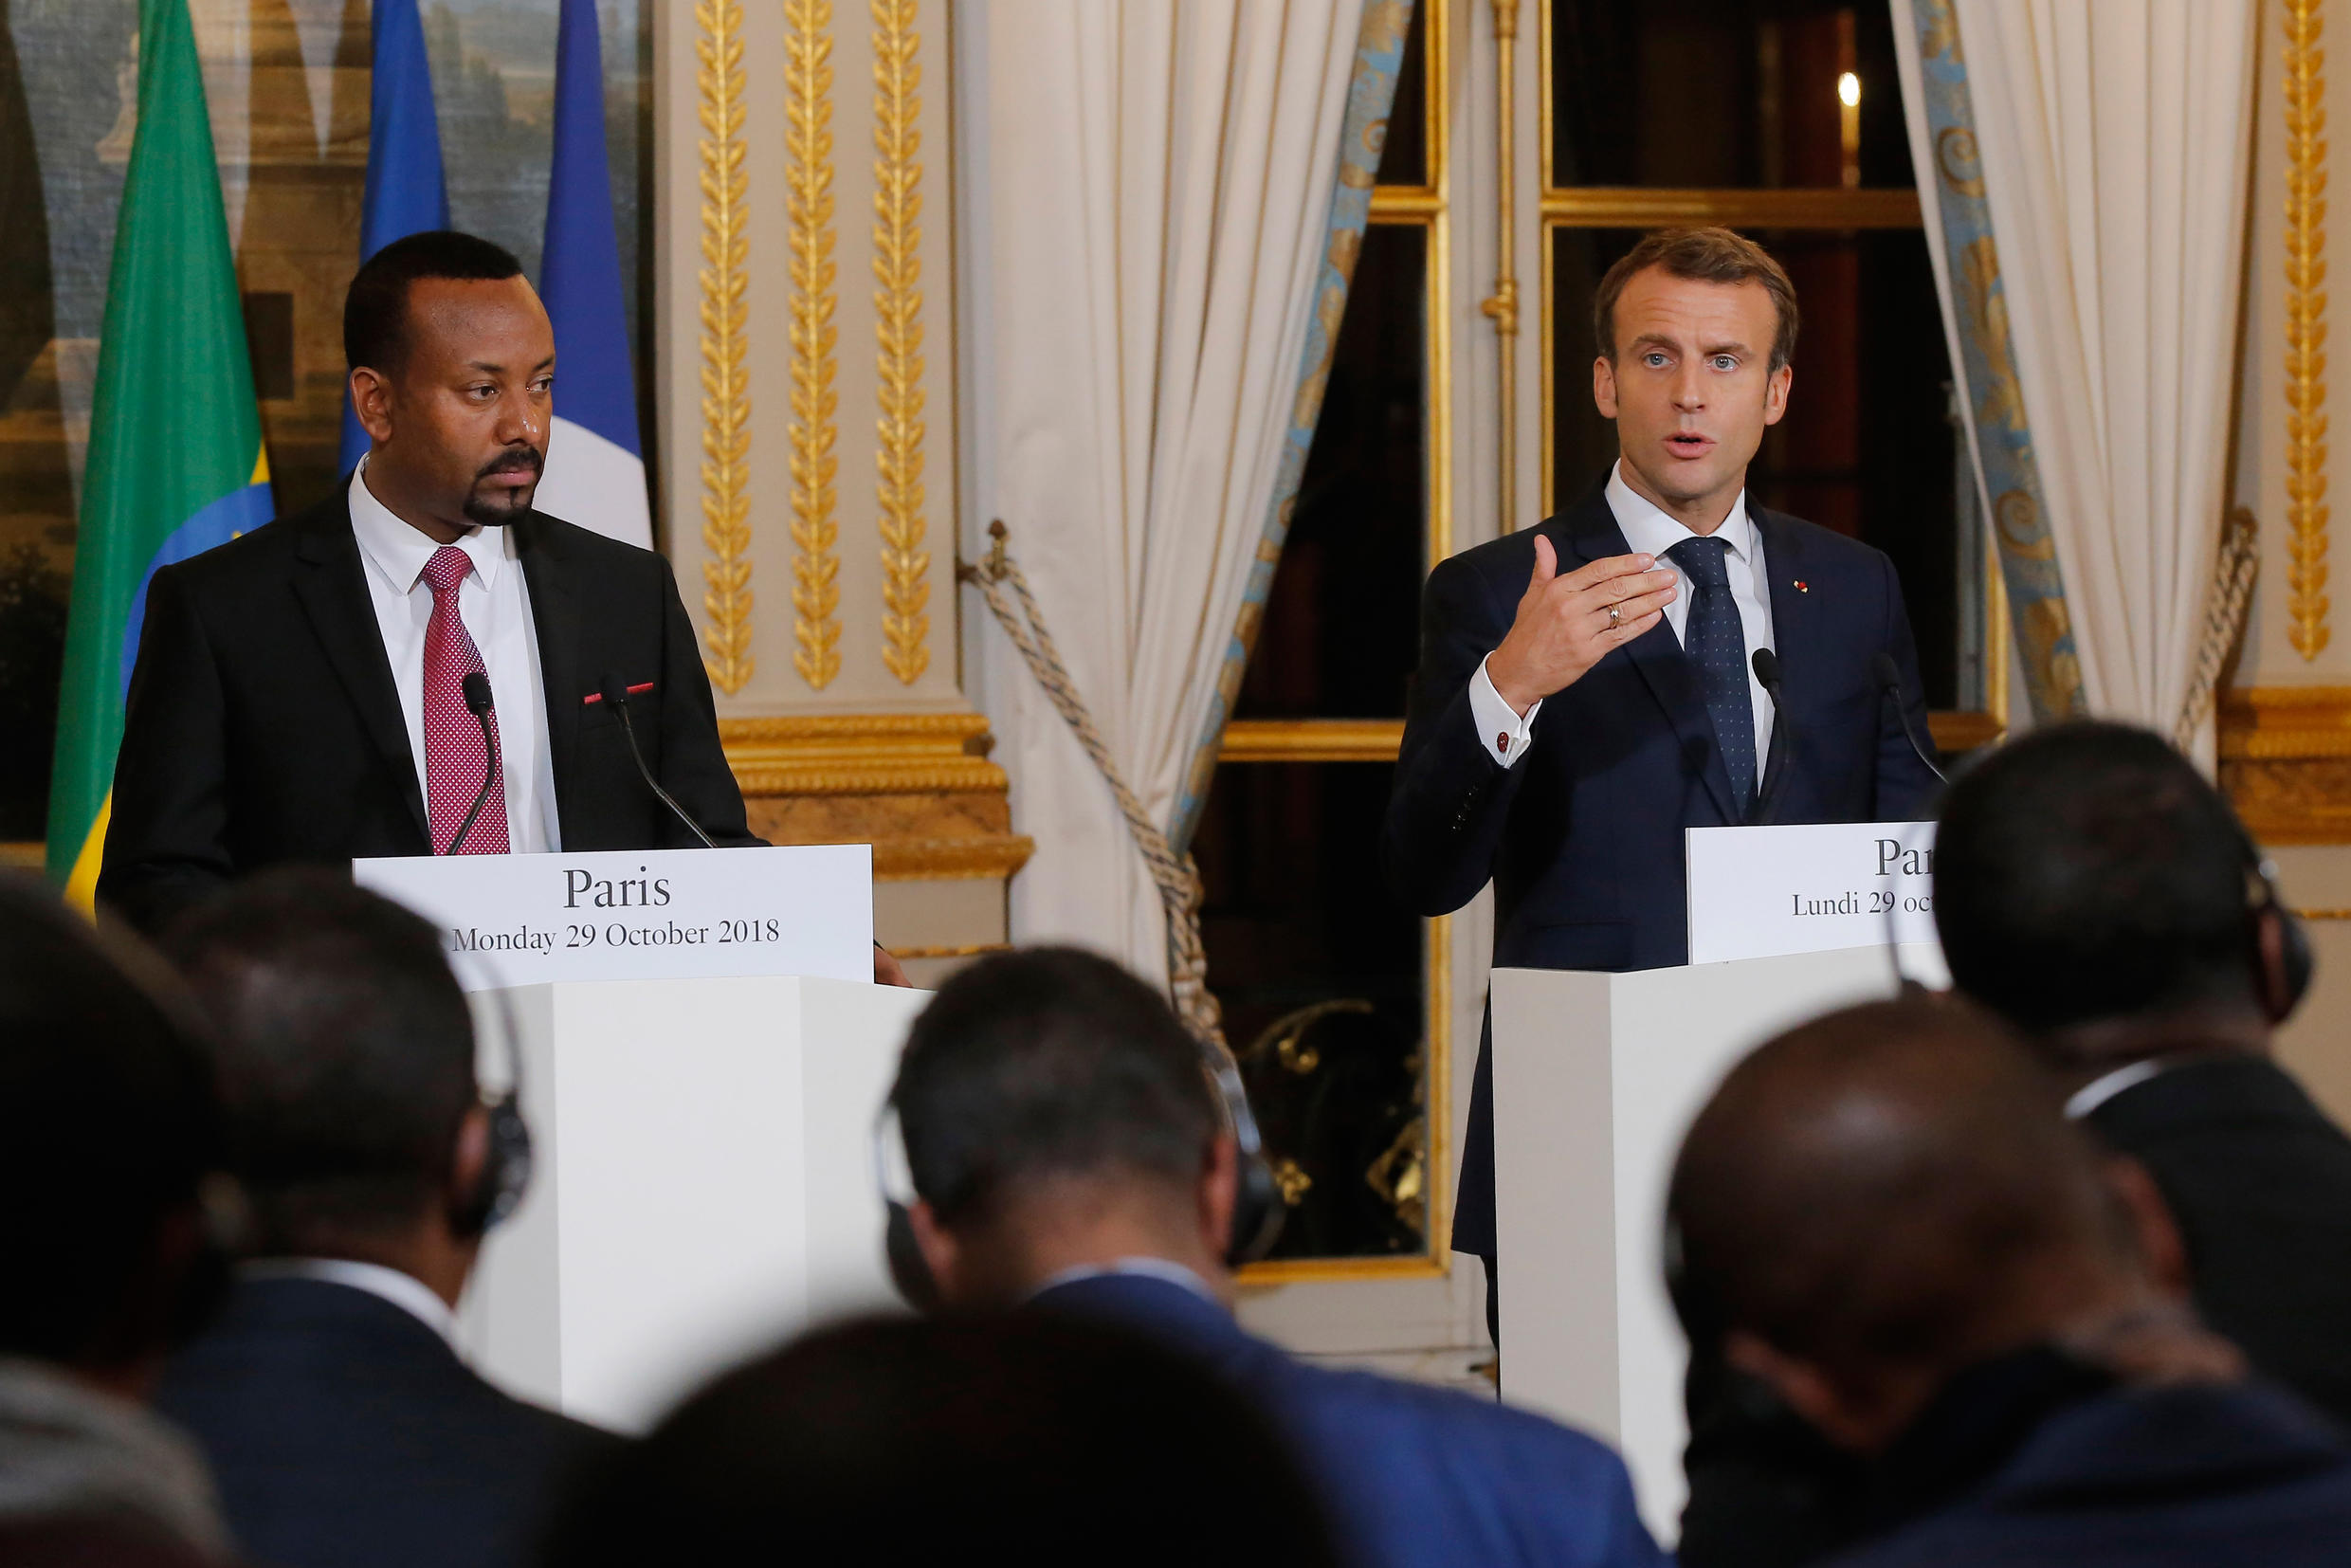 President Emmanuel Macron (R) during a joint press conference with Ethiopia's Prime minister, Abiy Ahmed (L), following their meeting at the Elysée, in october 2018 in Paris.